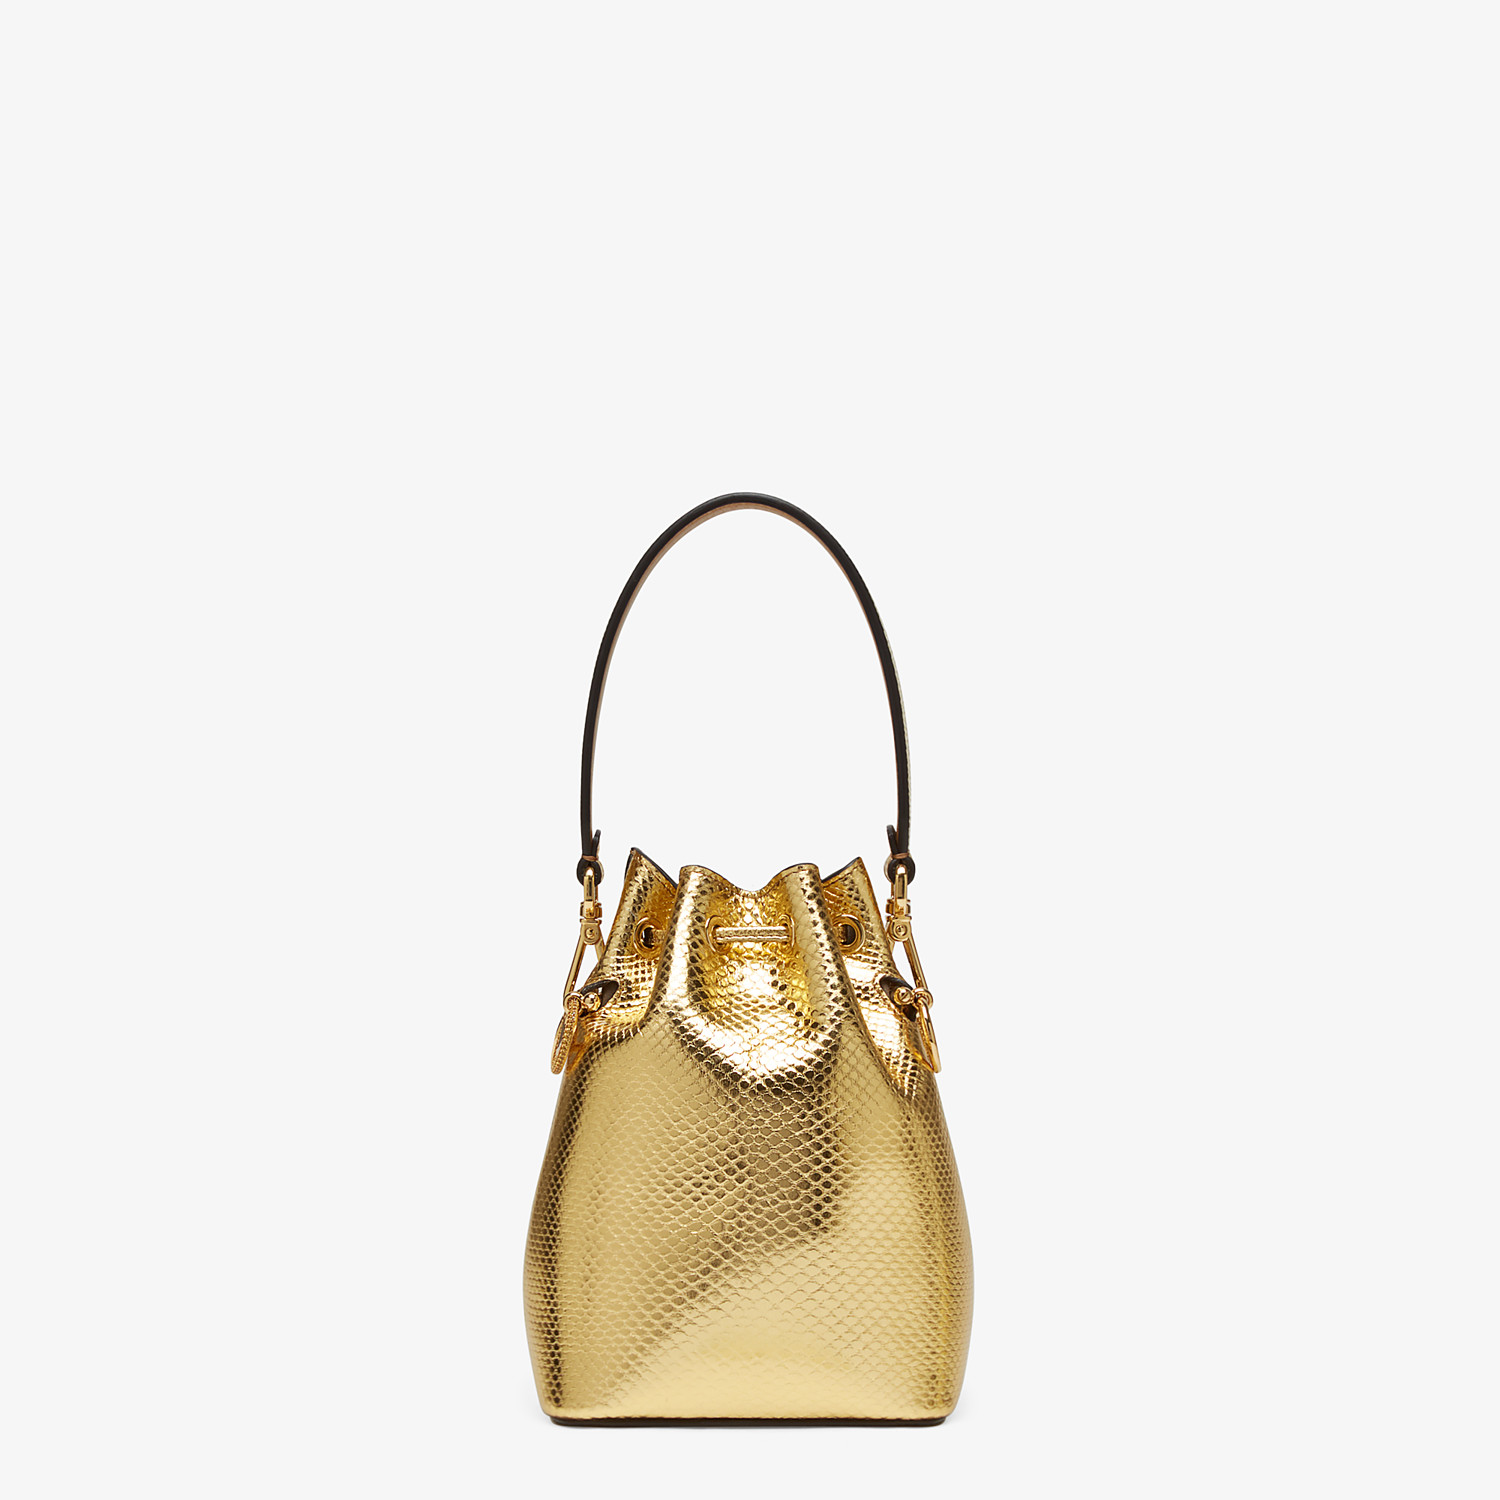 FENDI MON TRESOR - Gold colored karung mini-bag - view 3 detail